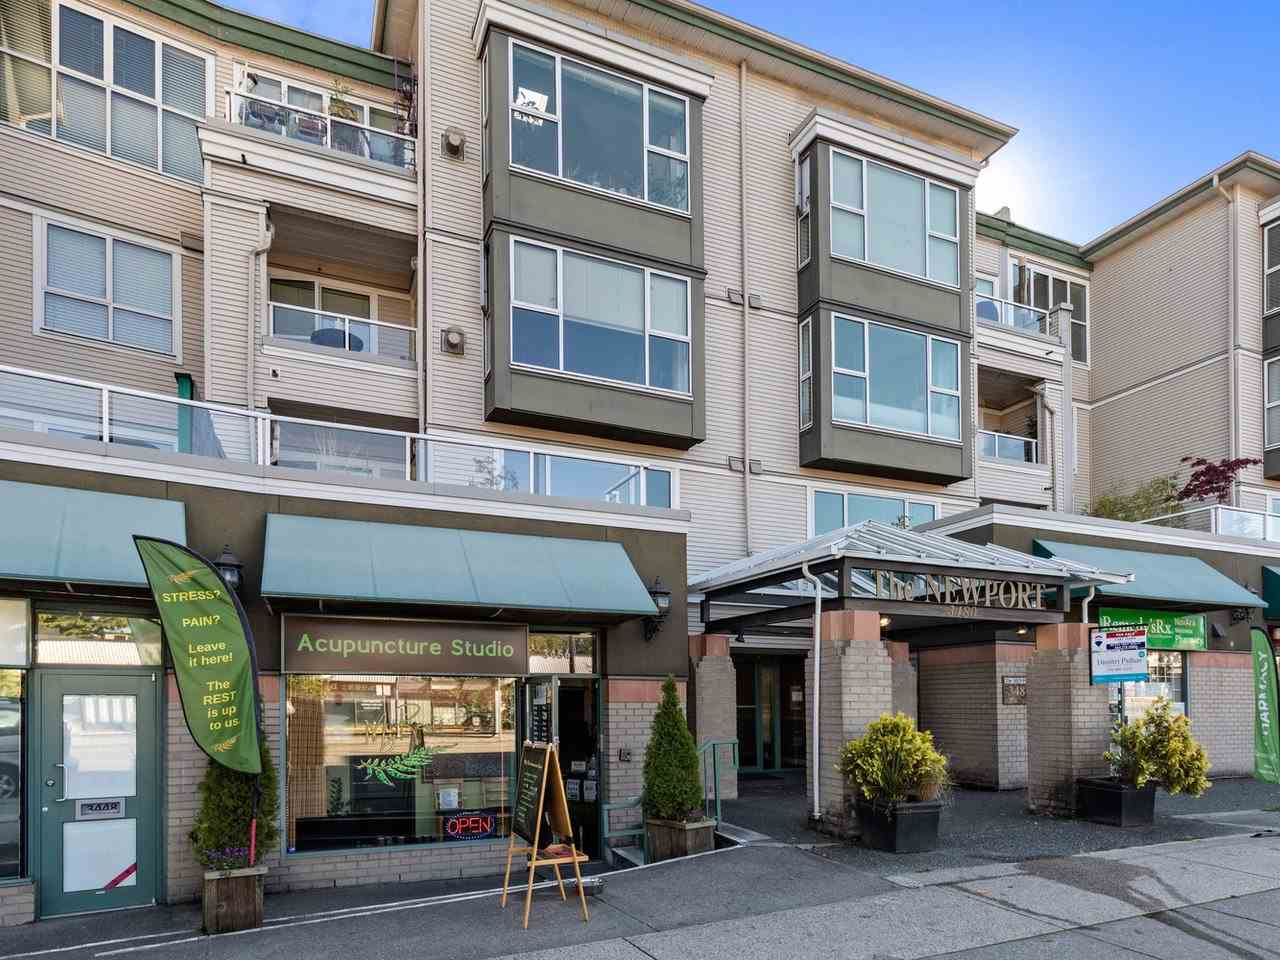 301 3480 MAIN STREET - Main Apartment/Condo for sale, 2 Bedrooms (R2503880)